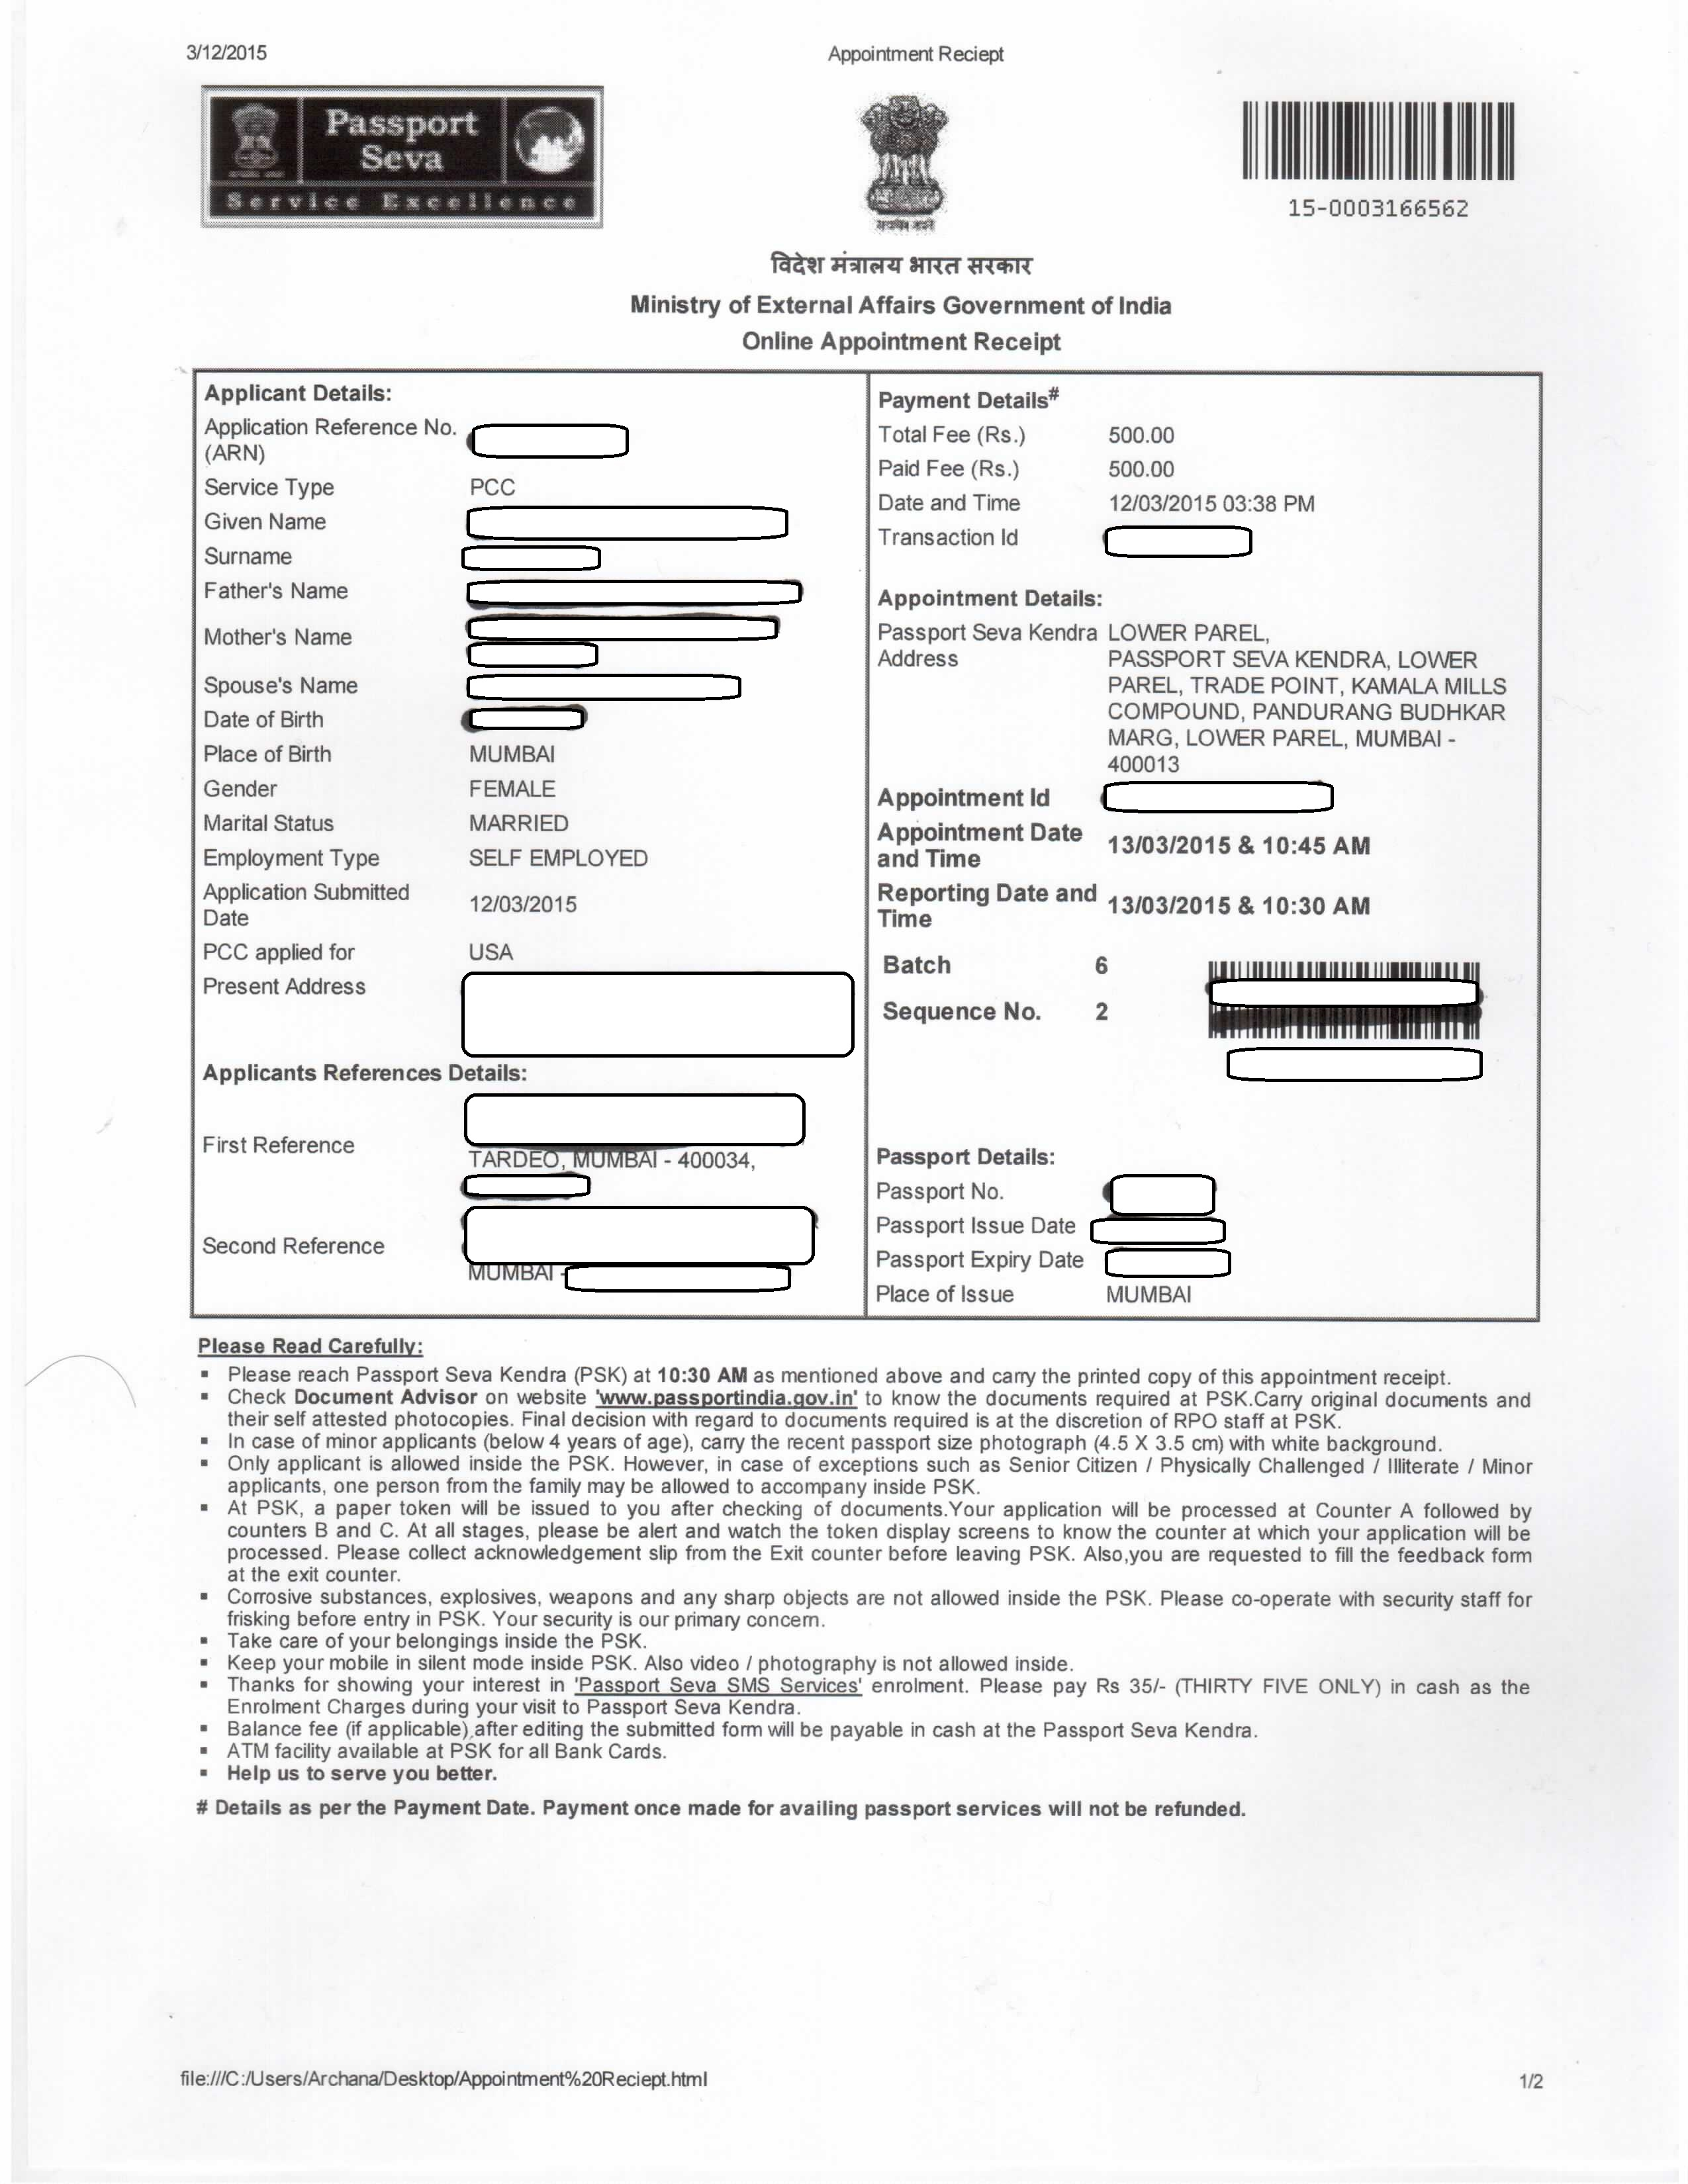 Passport seva services for police clearance certificate what a receiptfor pcc receipt for police clearance certificate xflitez Choice Image